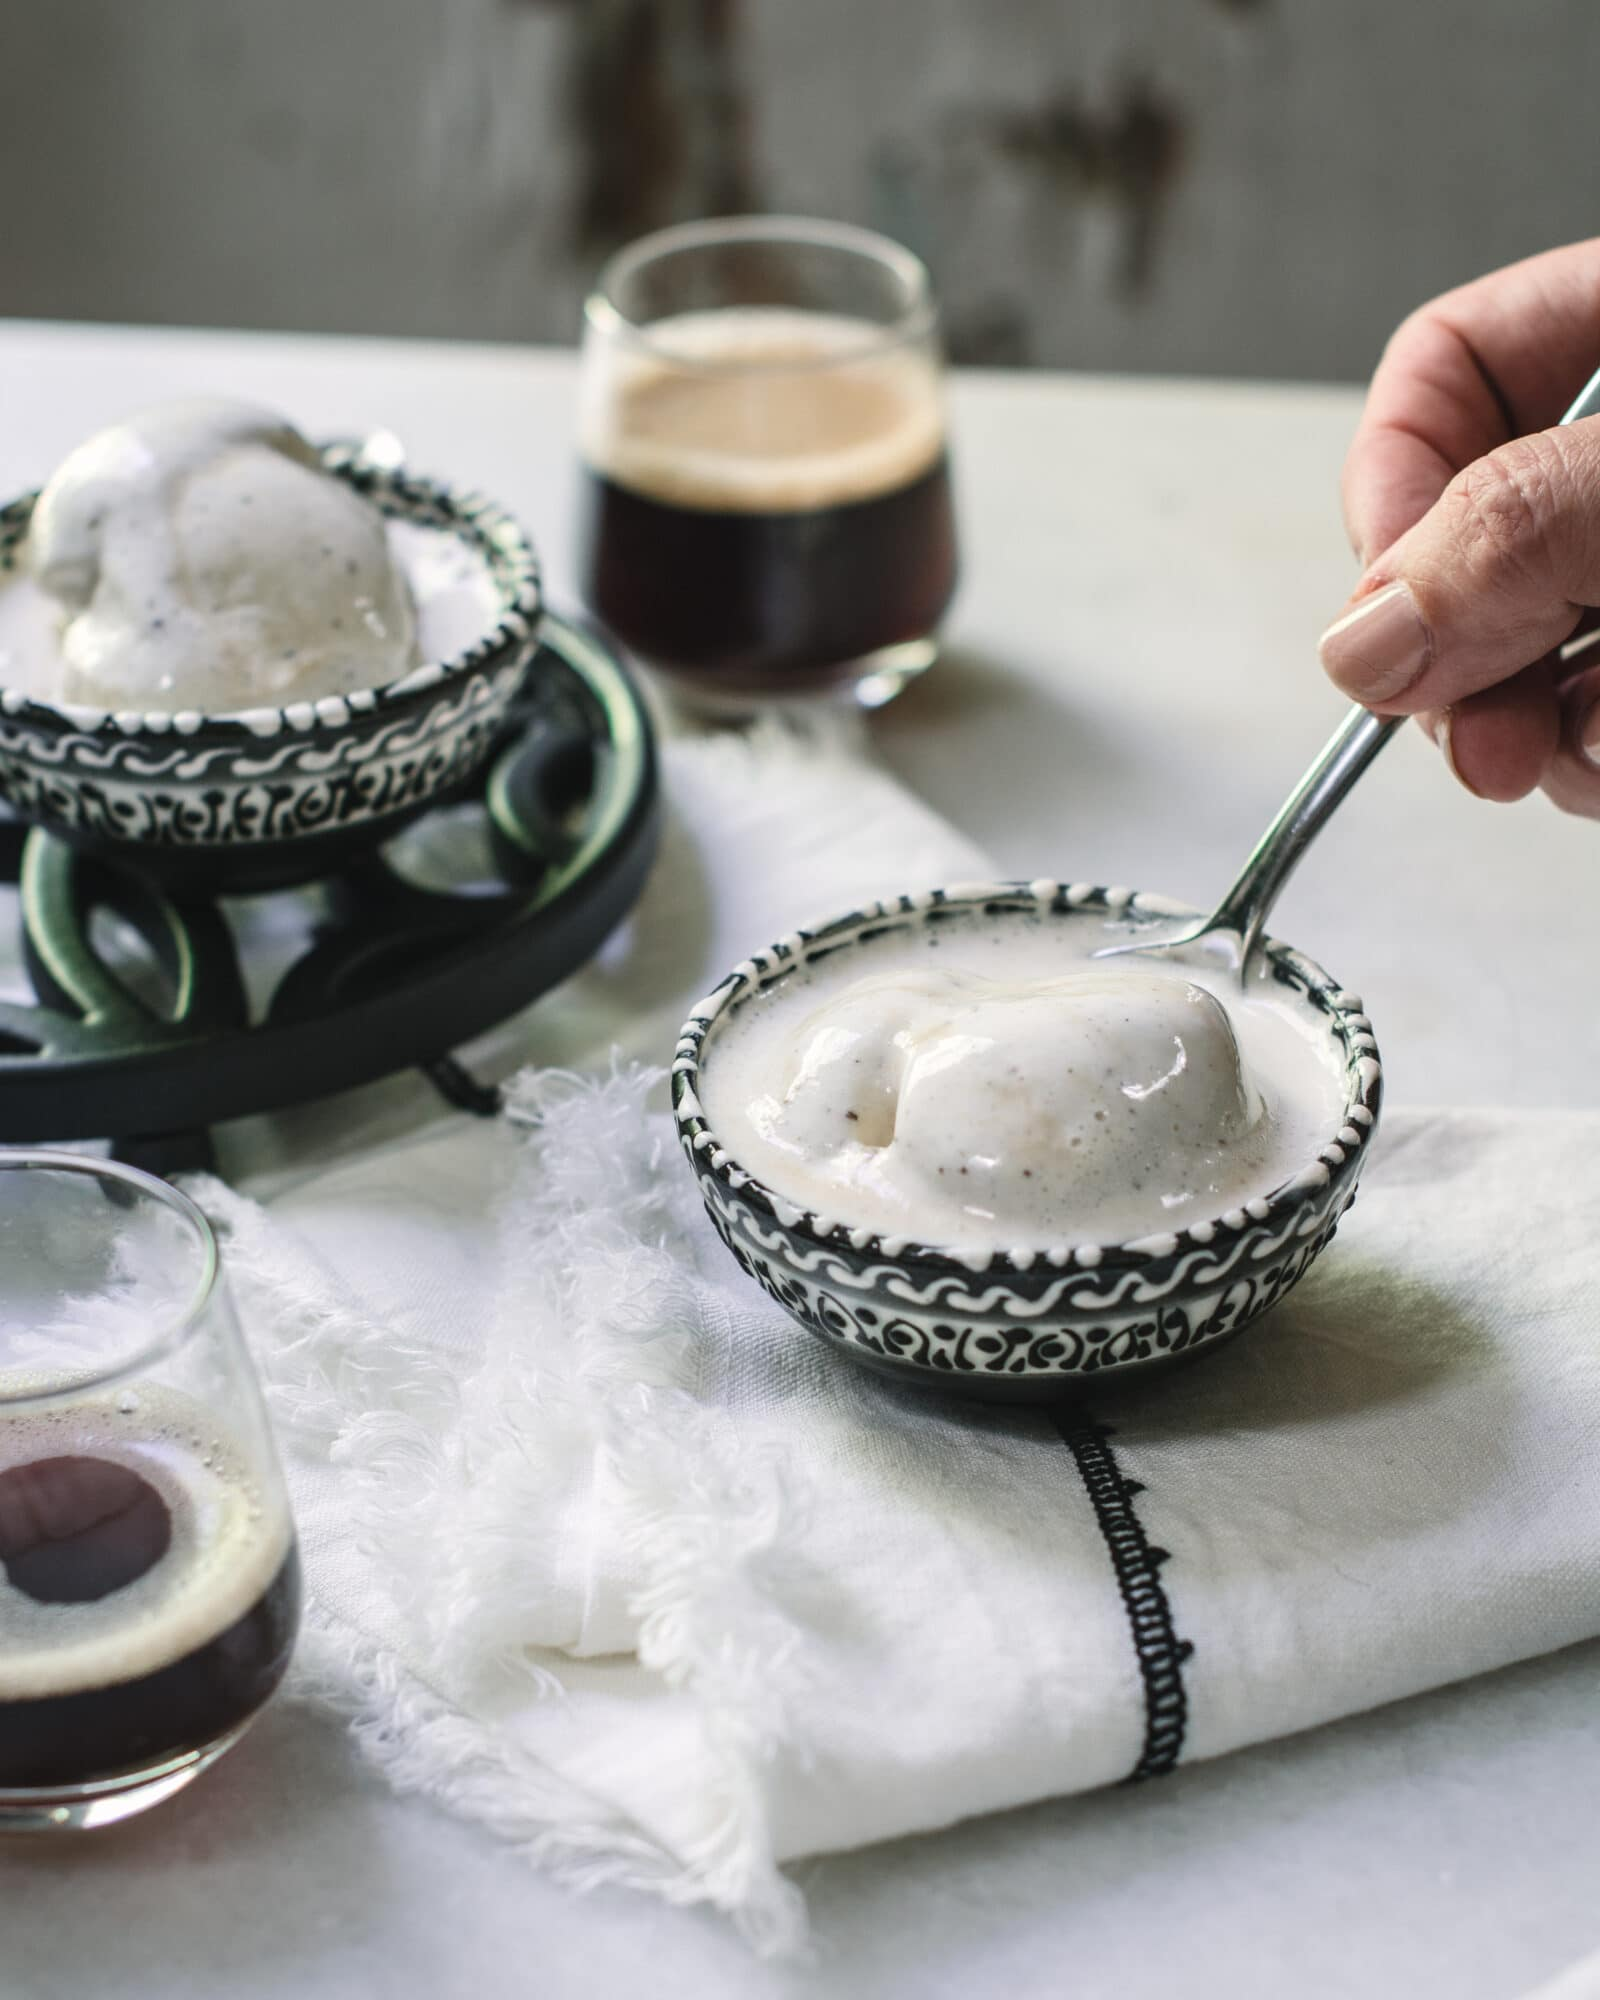 Serving affogato in bowls on white table with hand holding spoon